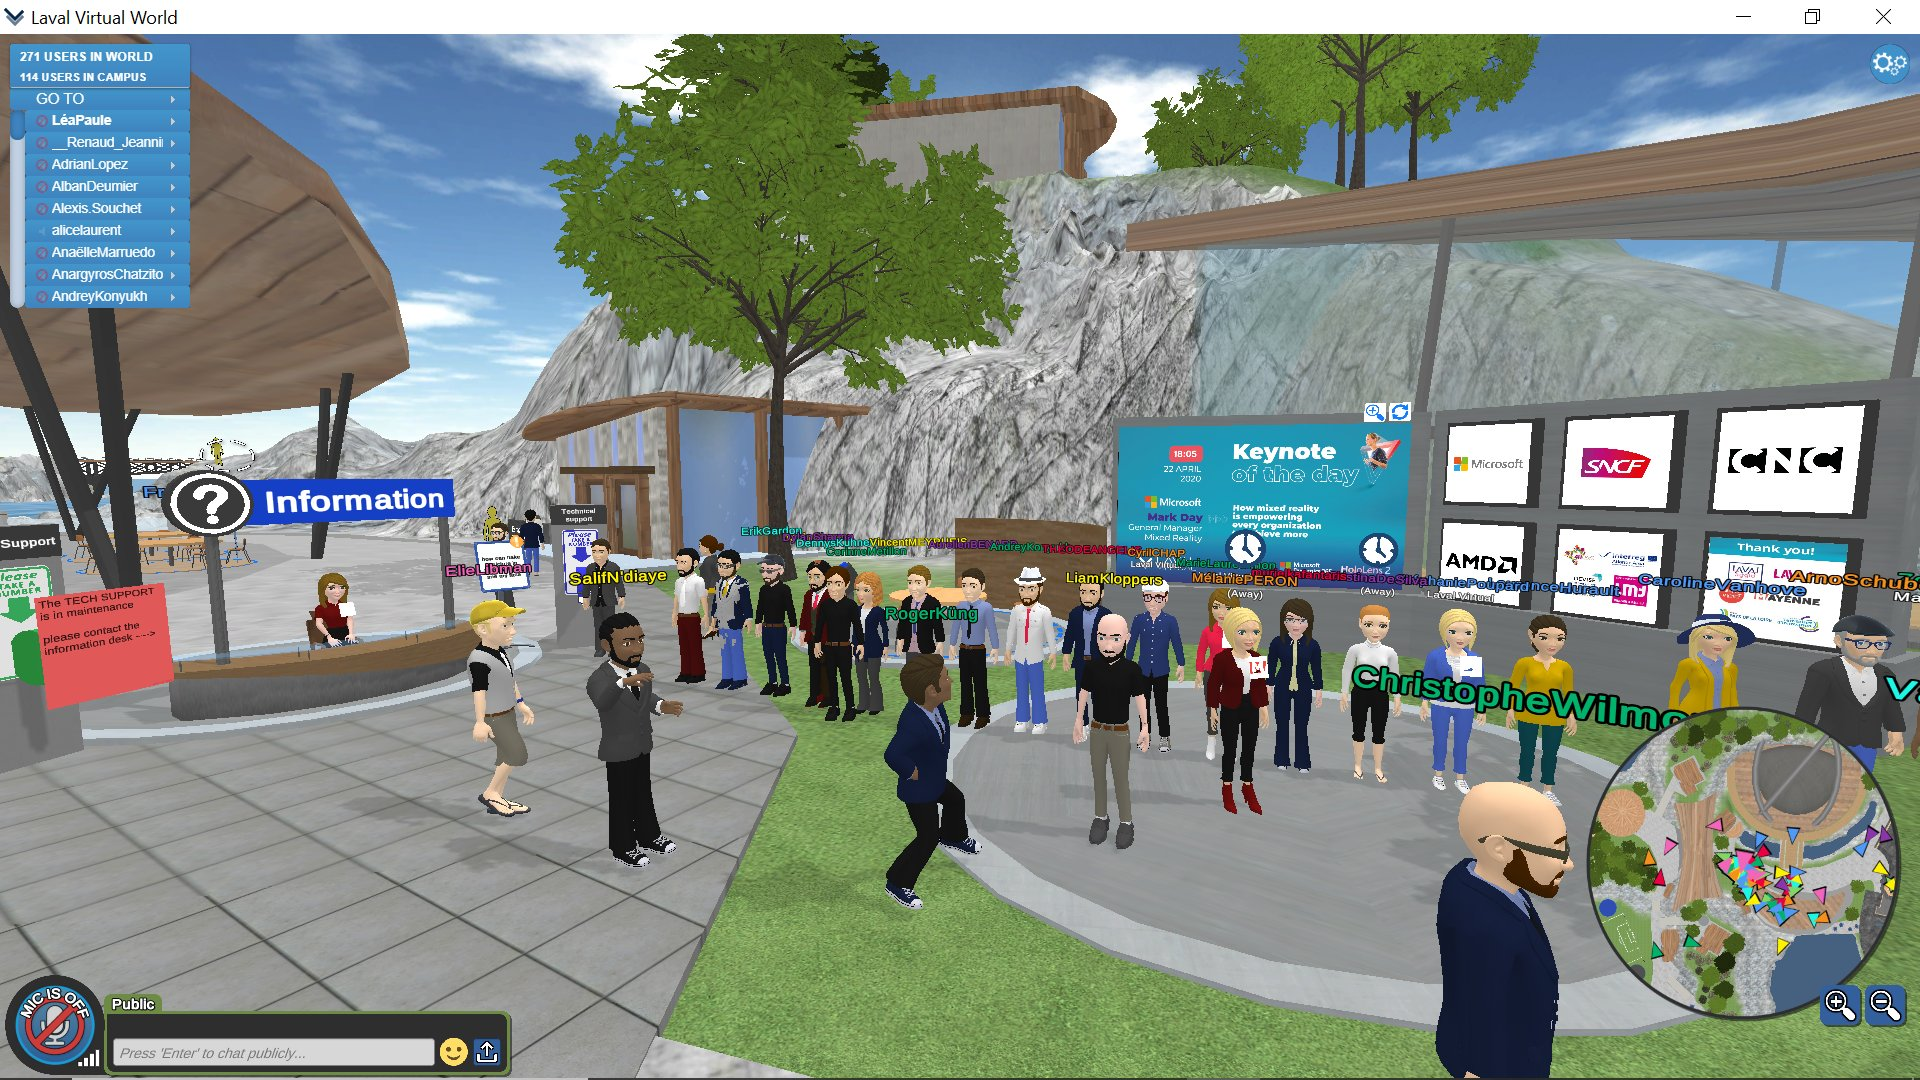 Laval Virtual World 2020 vu par deux influenceurs VR/AR